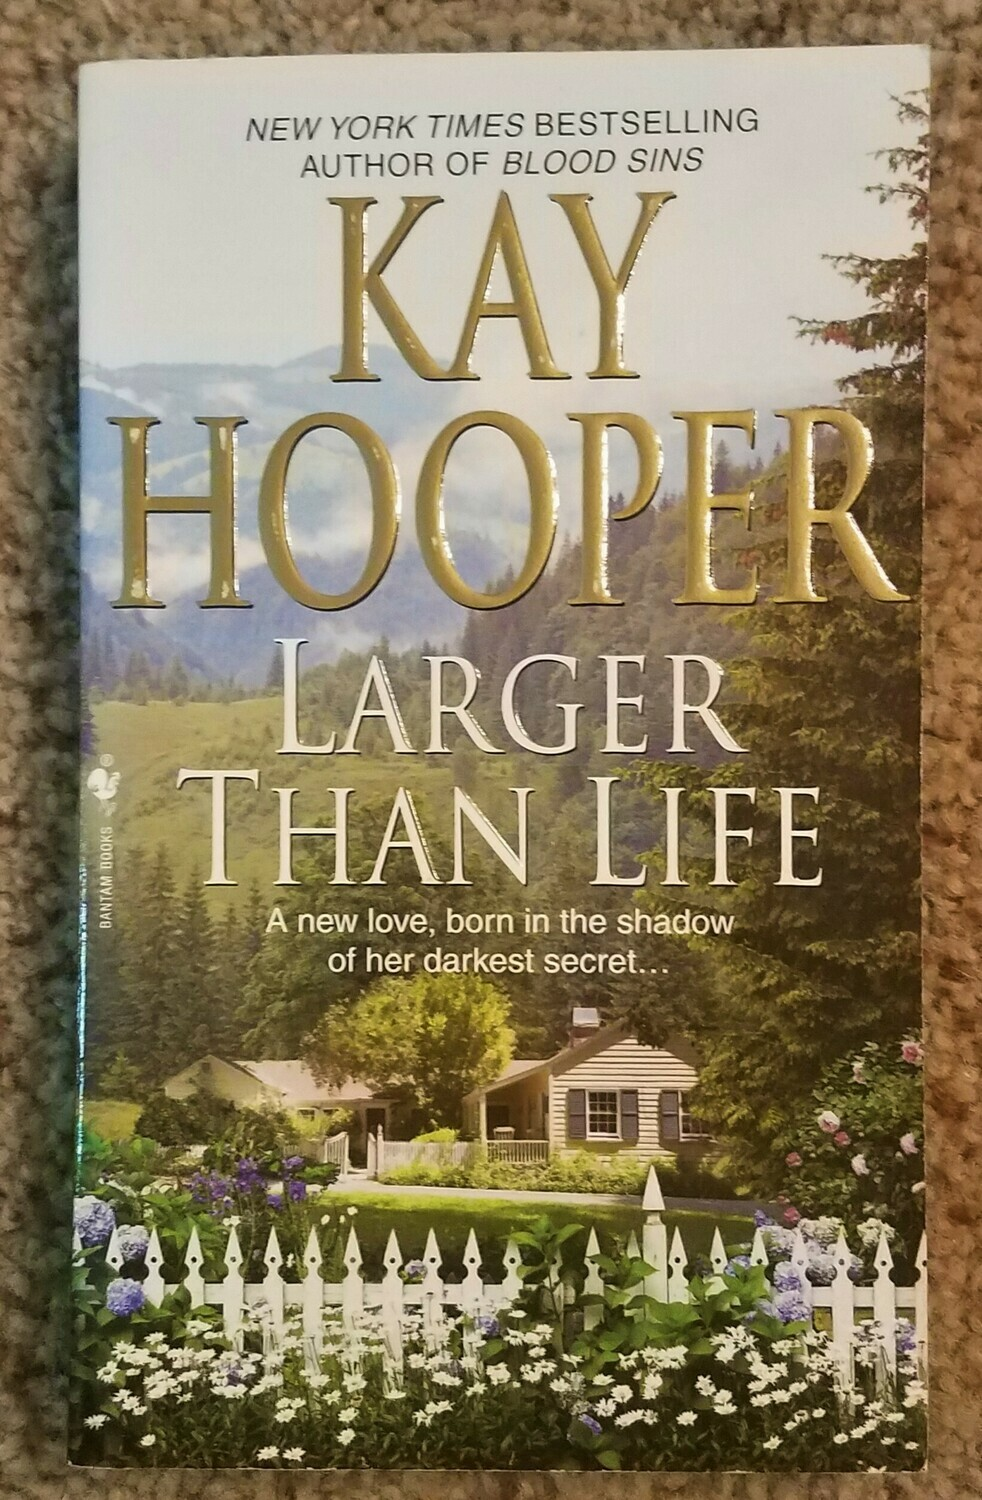 Larger Than Life by Kay Hooper